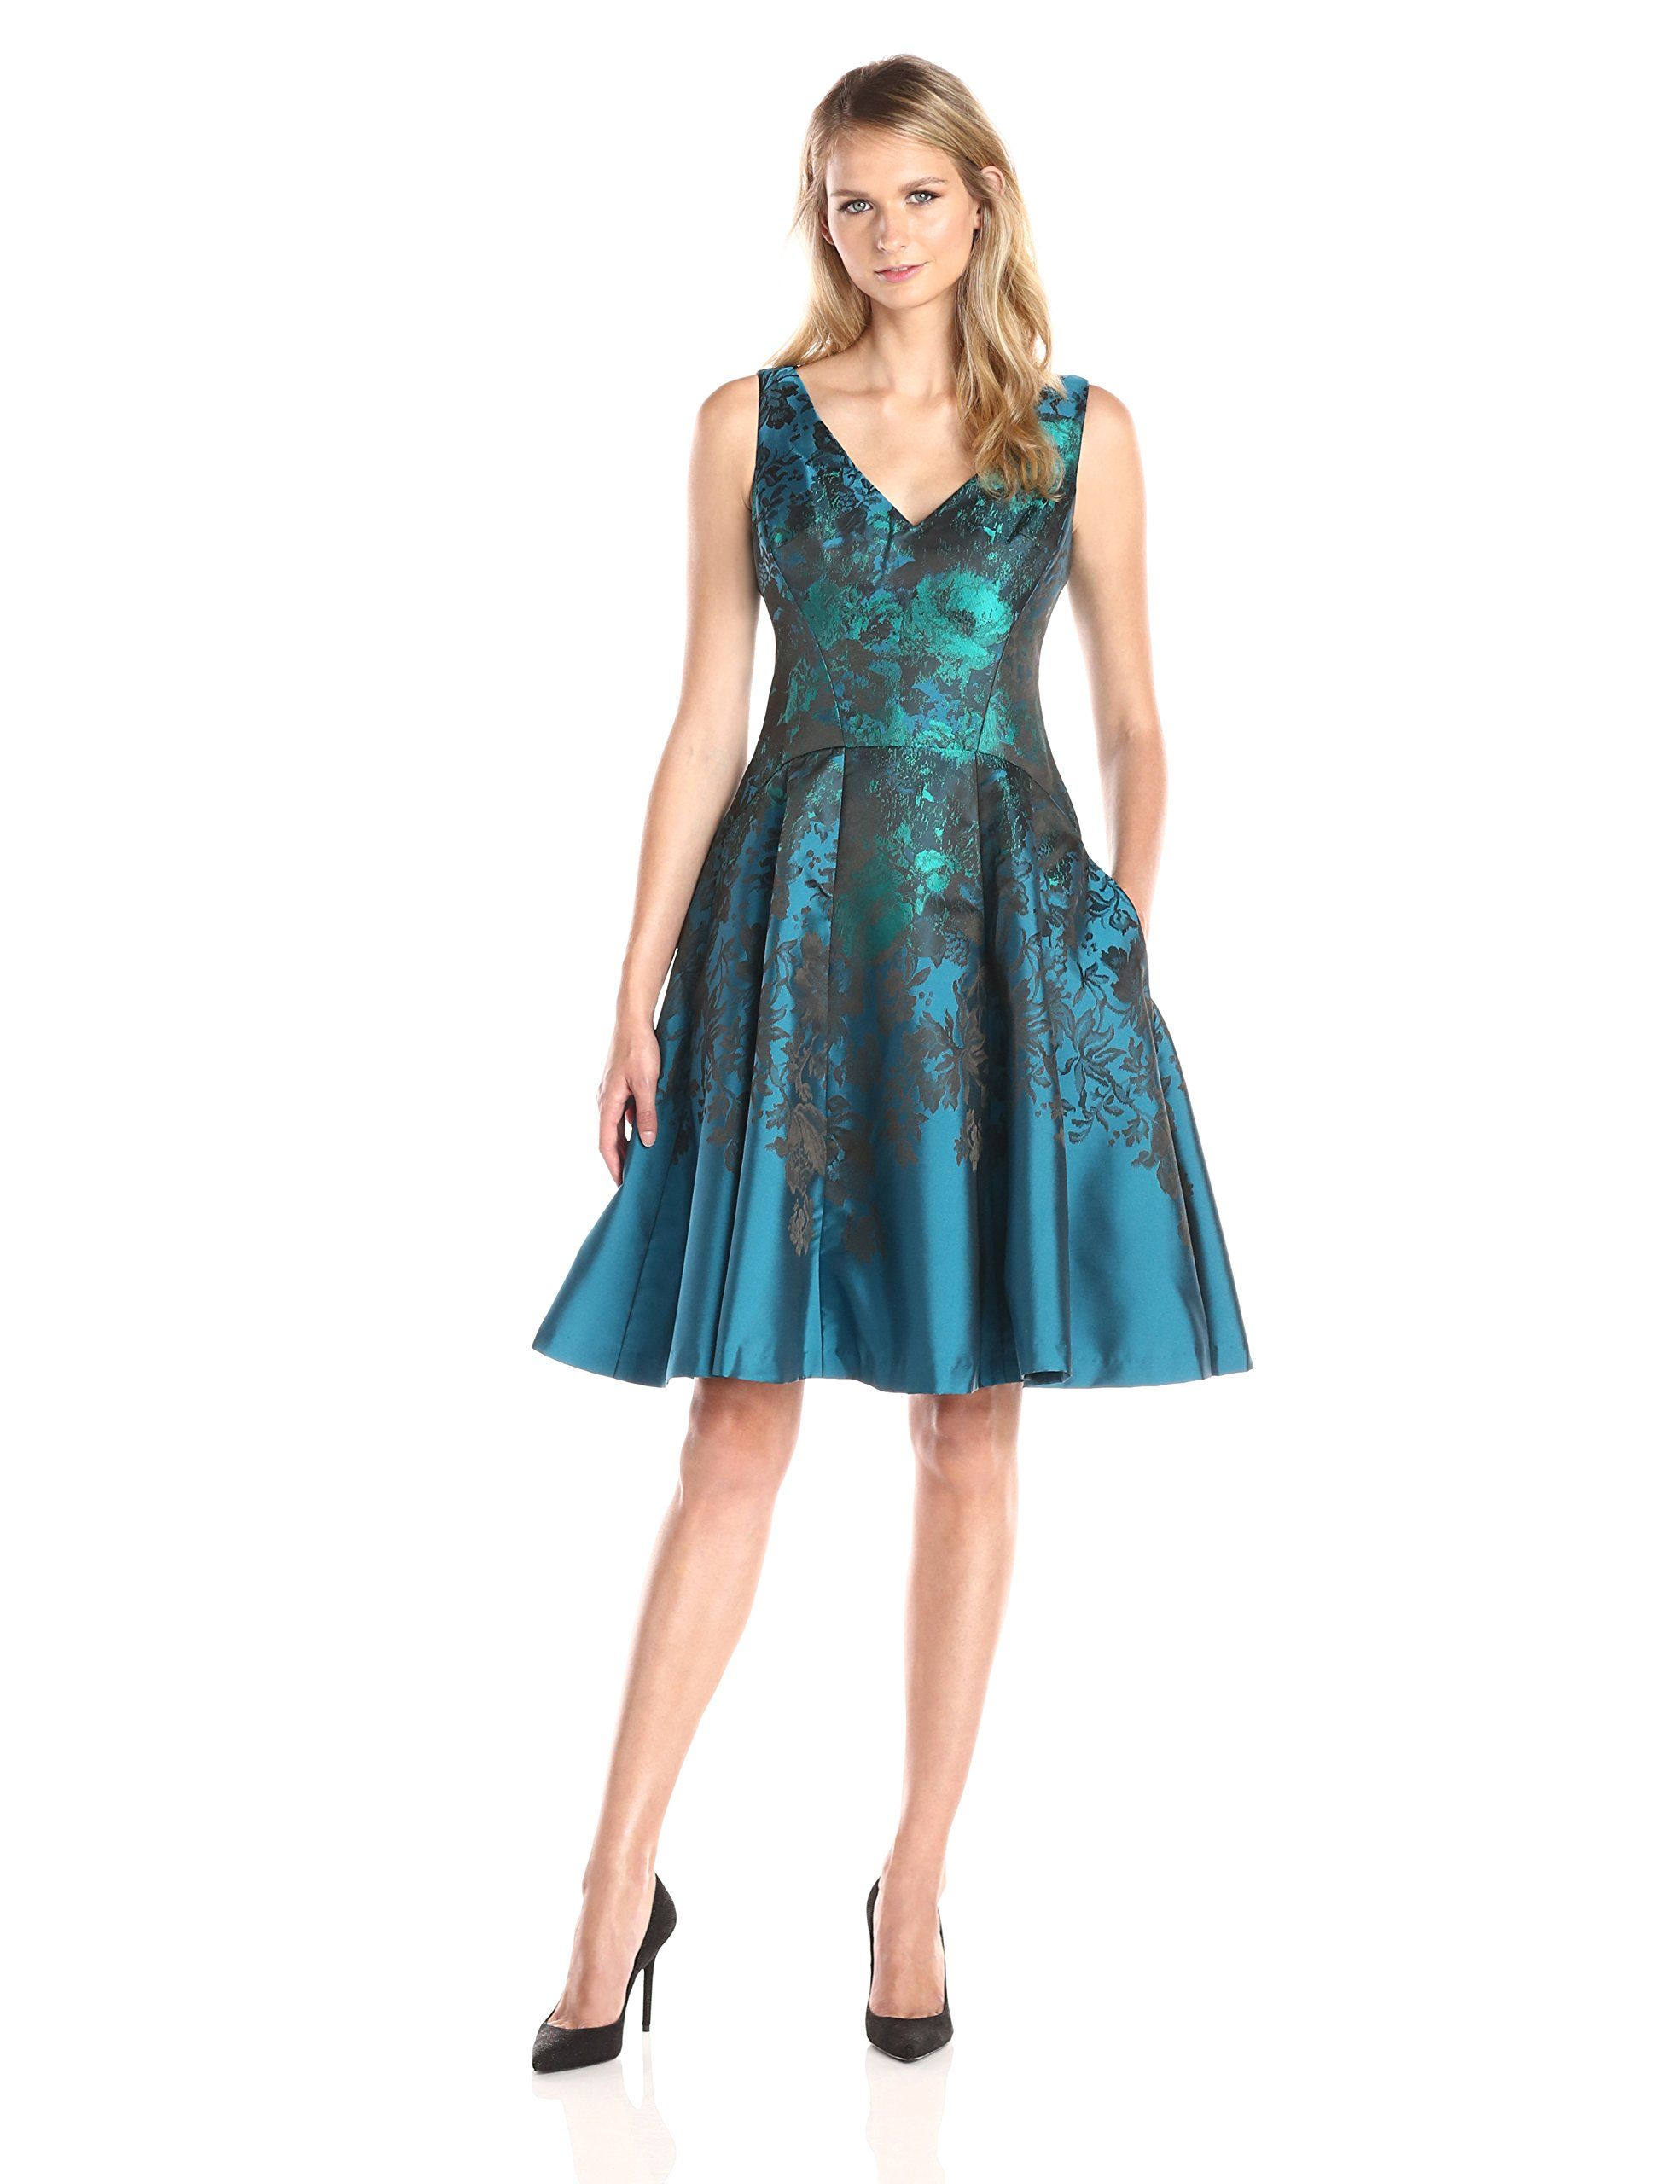 26b29a1096f96 Maggy London Women's Teal Flower Jacquard Fit and Flare Party Dress ...